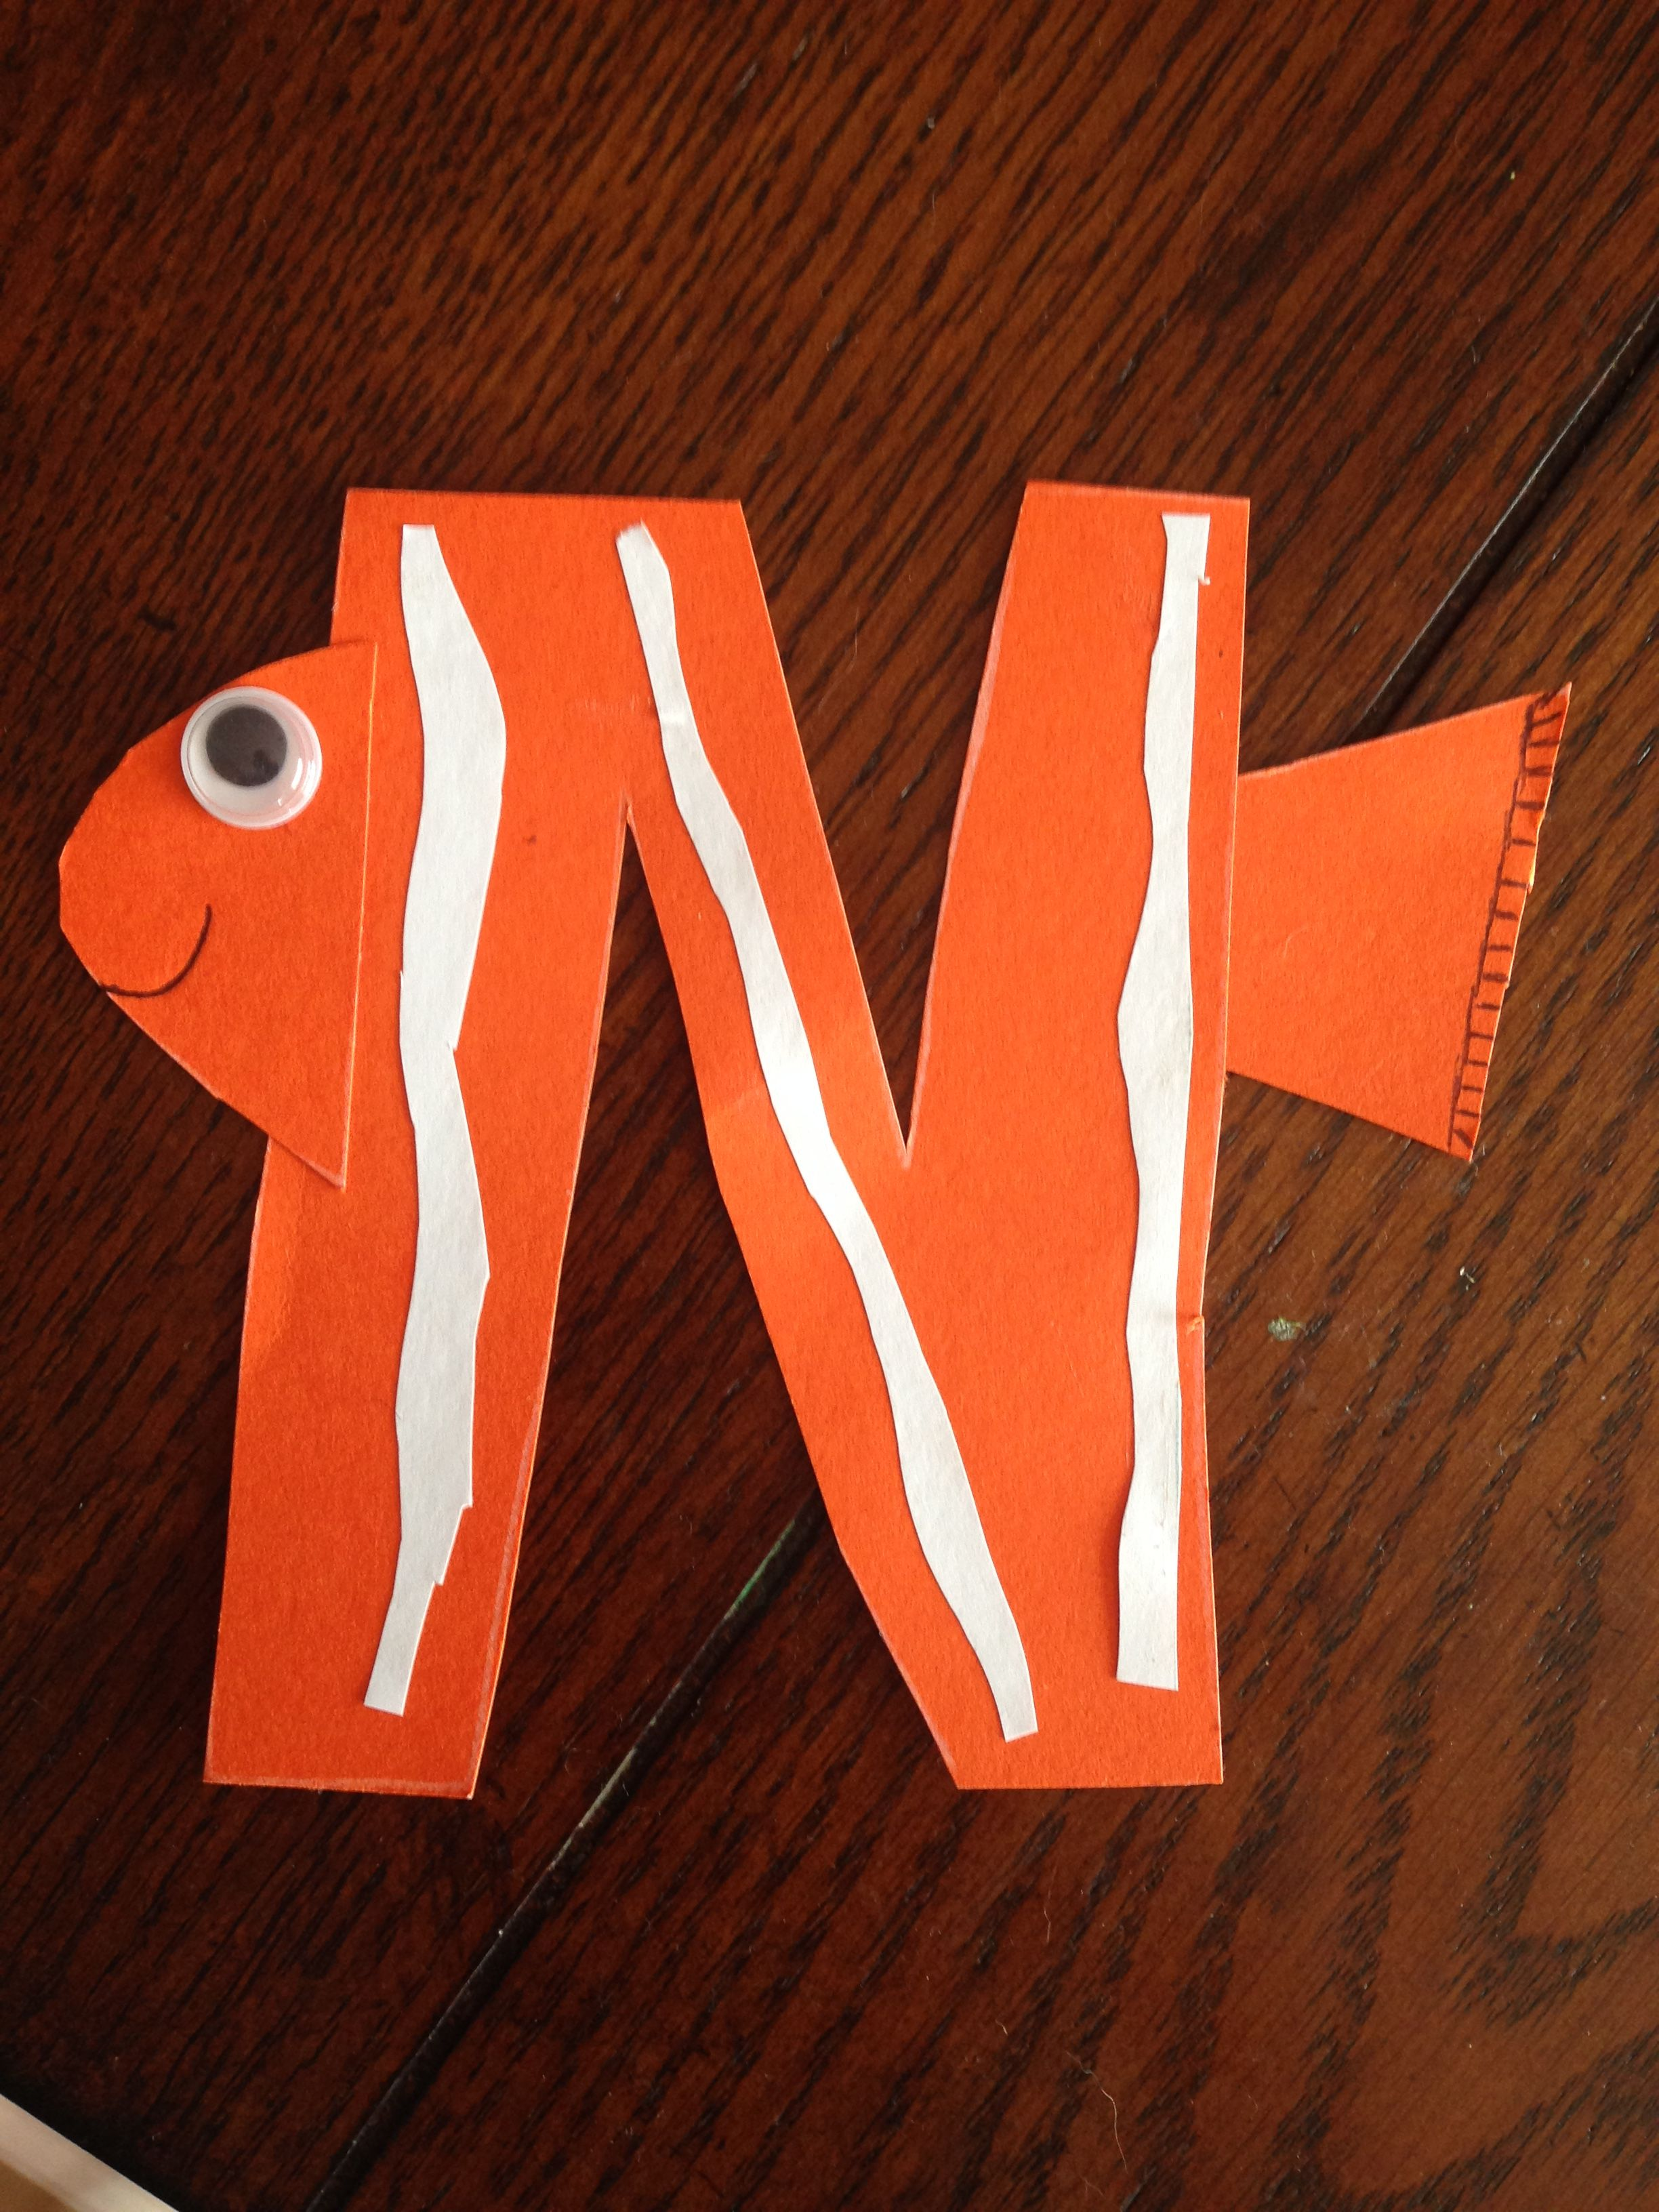 n is for nemo i know that nemo is it an actual animal but try and